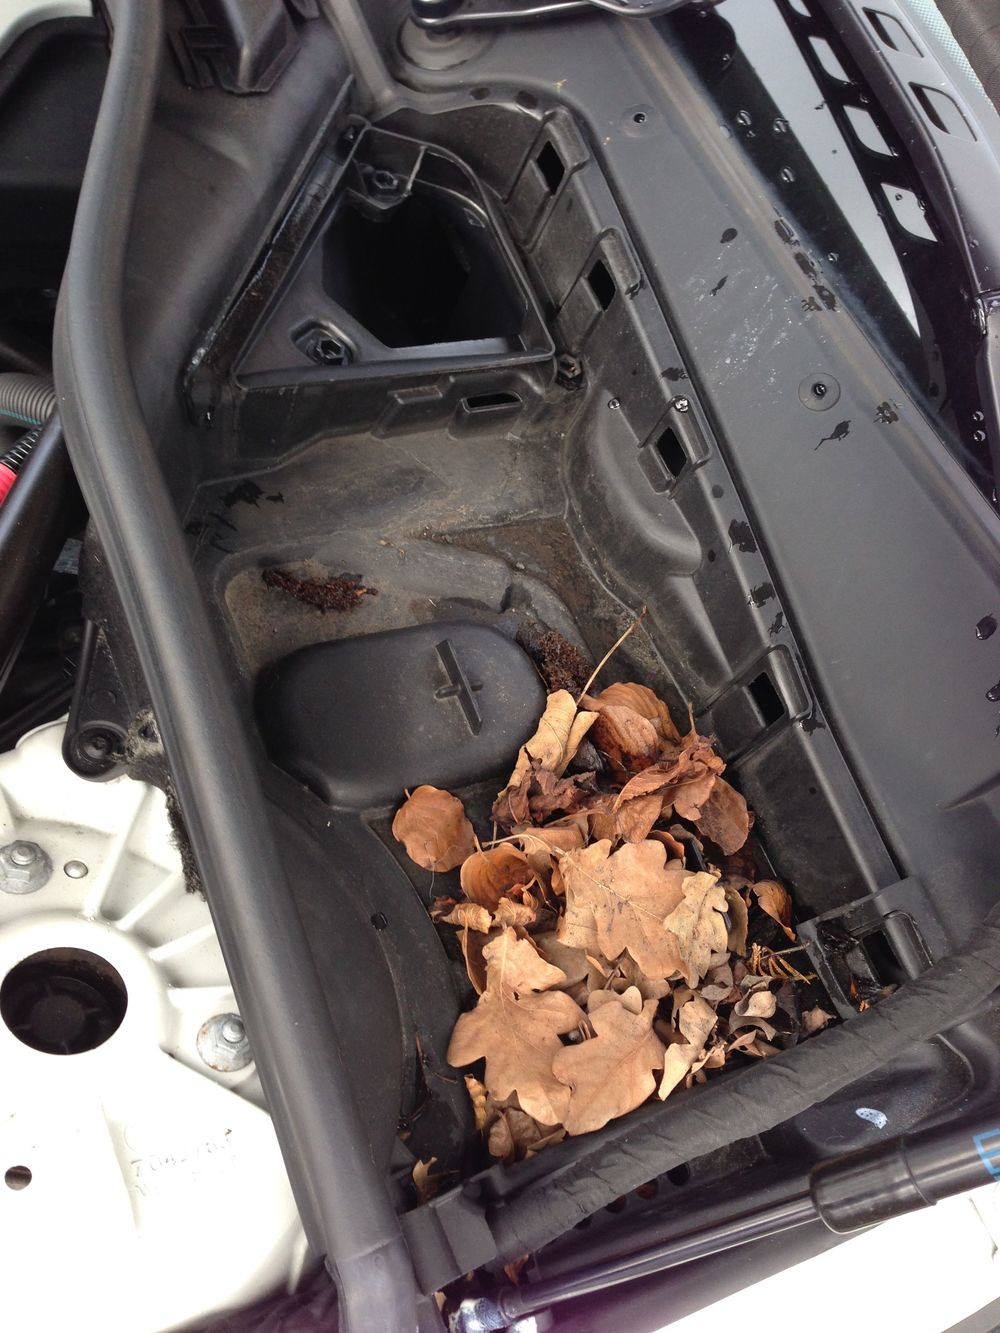 What's this? Autumn leaves in the cabin filter housing on a car serviced in June? Hmm...